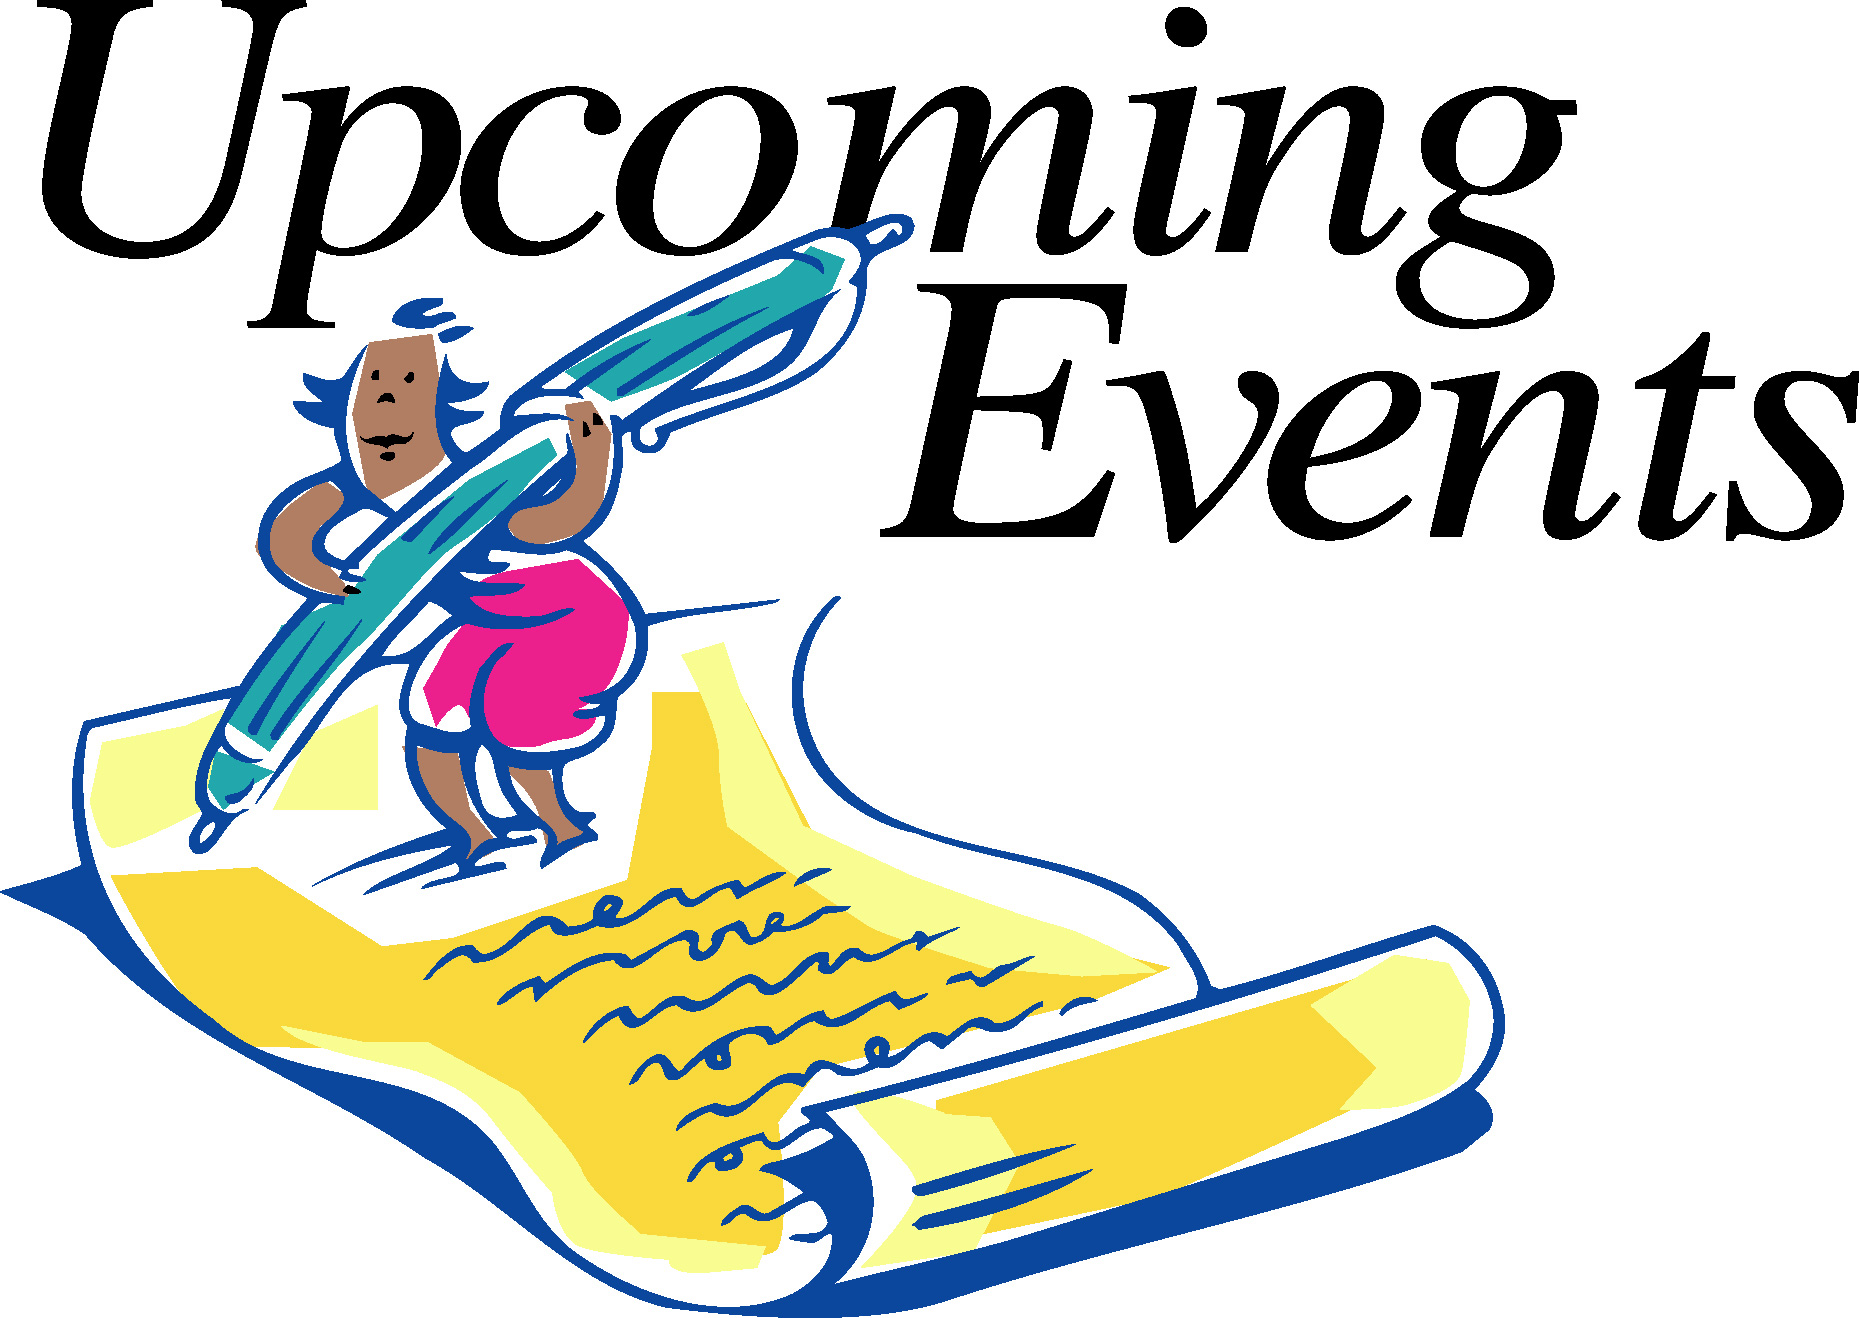 ... Upcoming Events Clip Art. St. Paulu0-... Upcoming Events Clip Art. St. Paulu0026#39;s Presbyterian Church, Oshawa-13